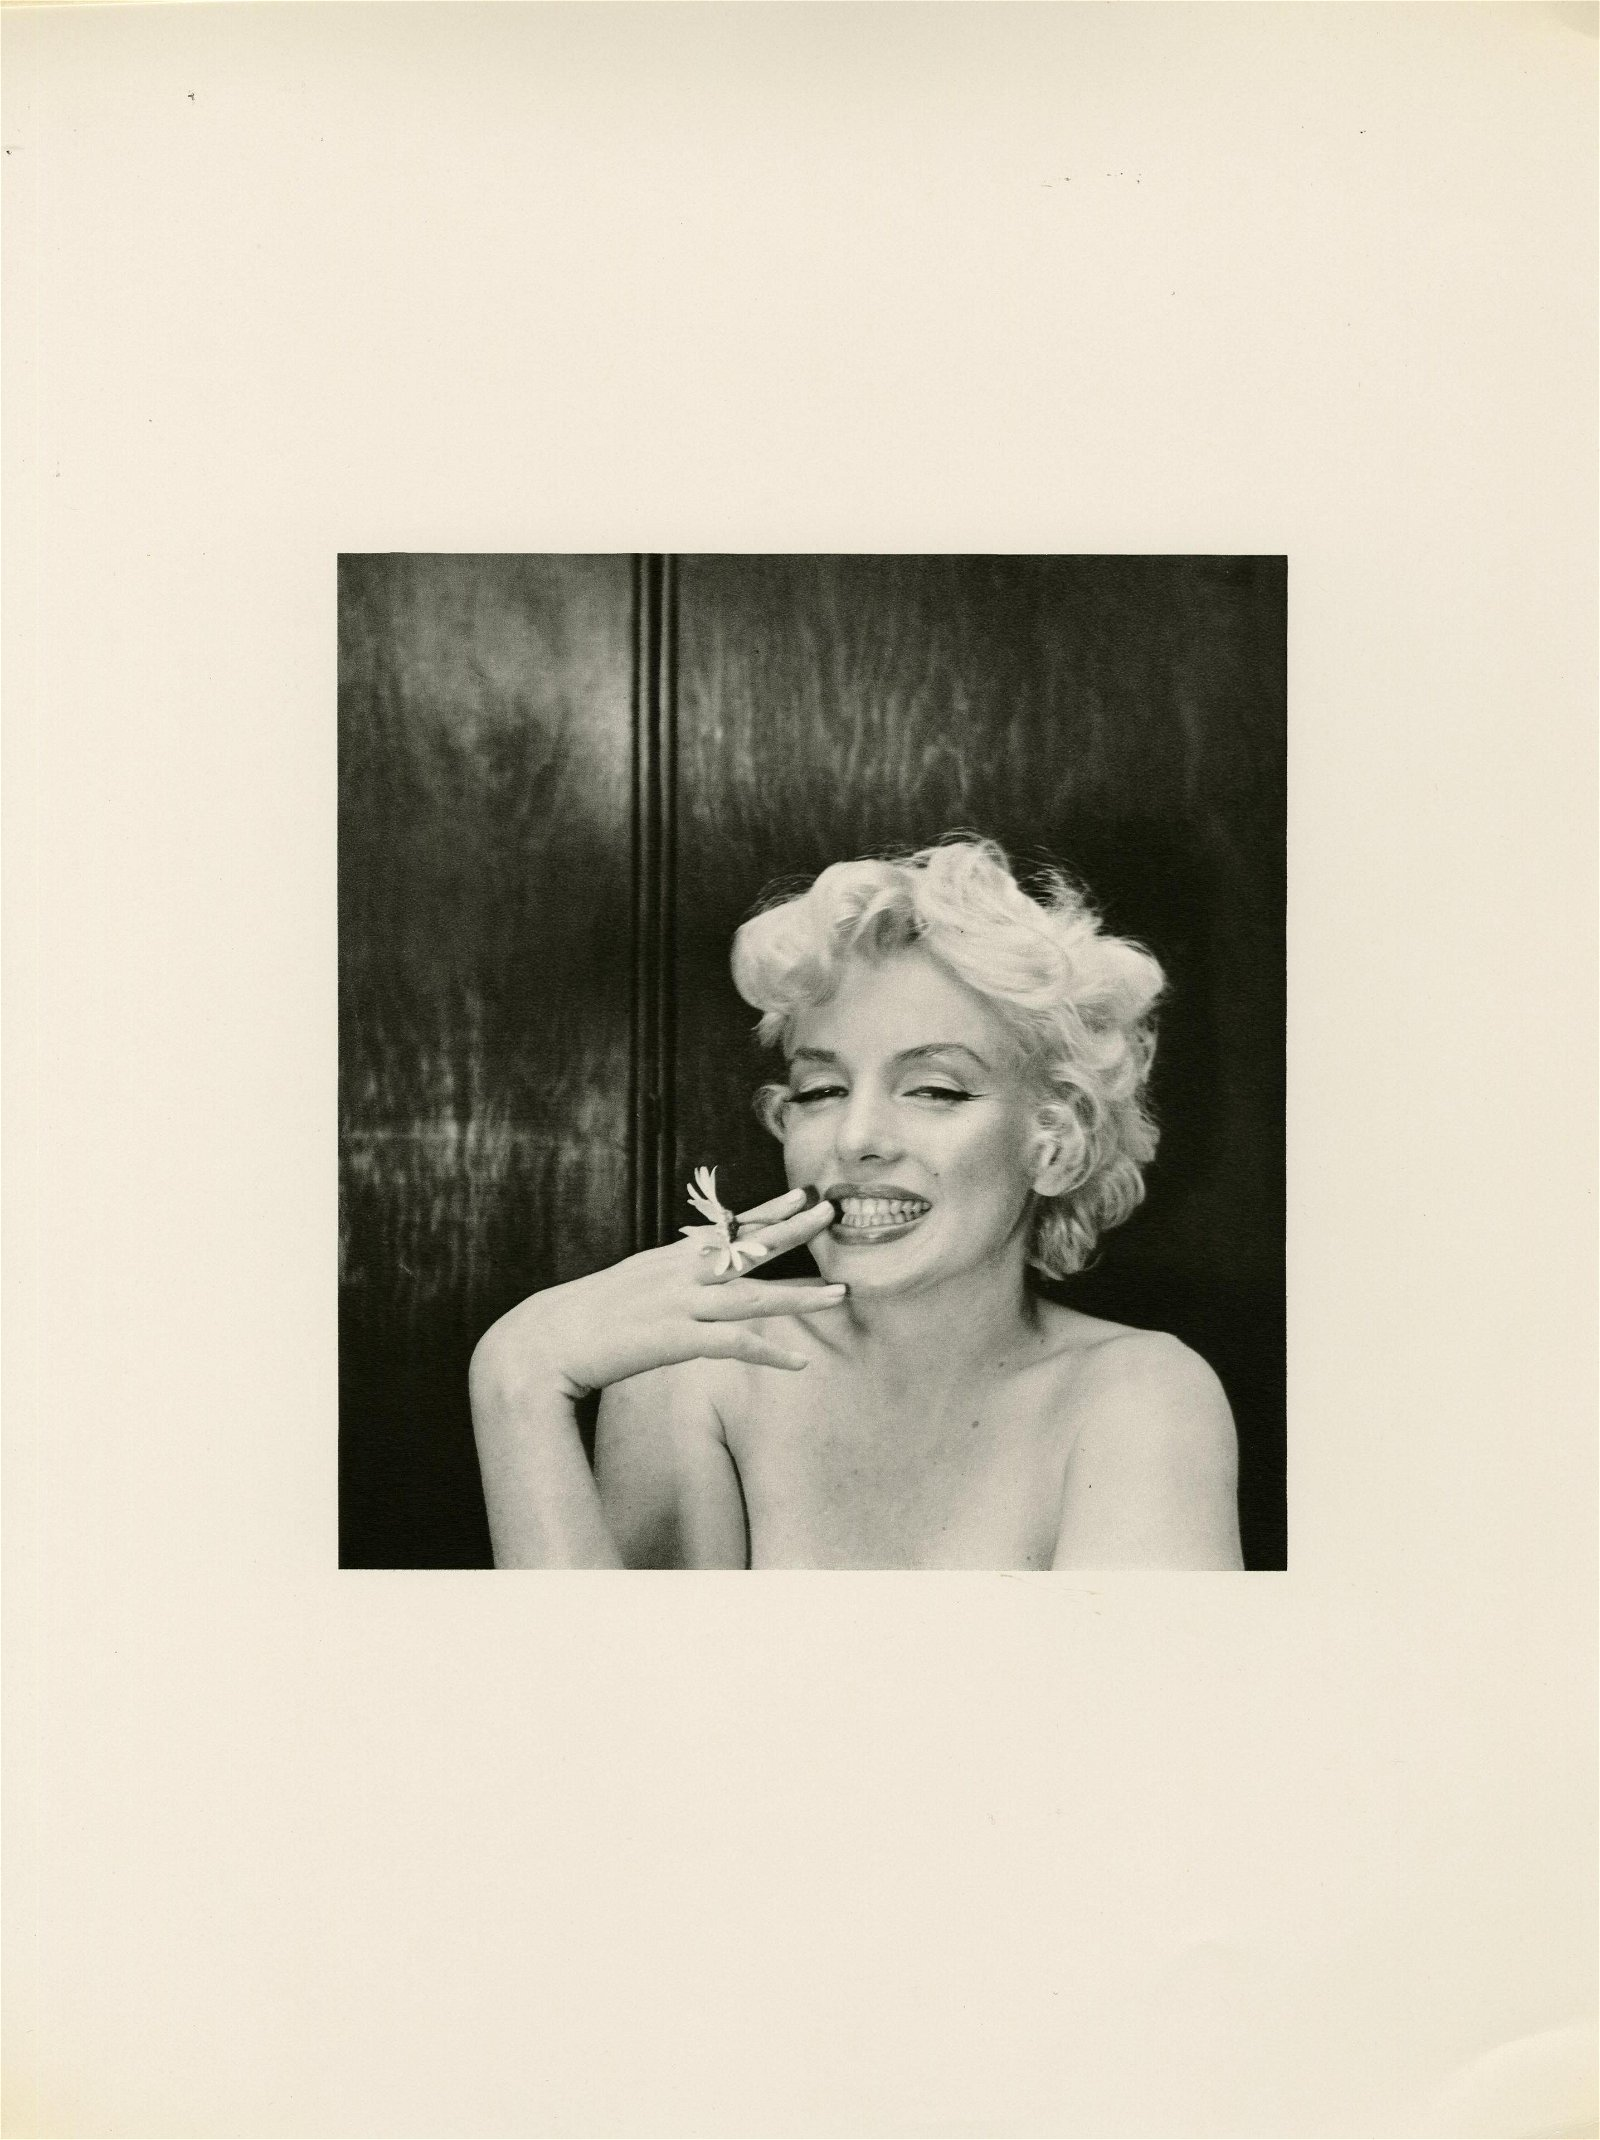 CECIL BEATON - Marilyn Monroe 1956 #1 - Original